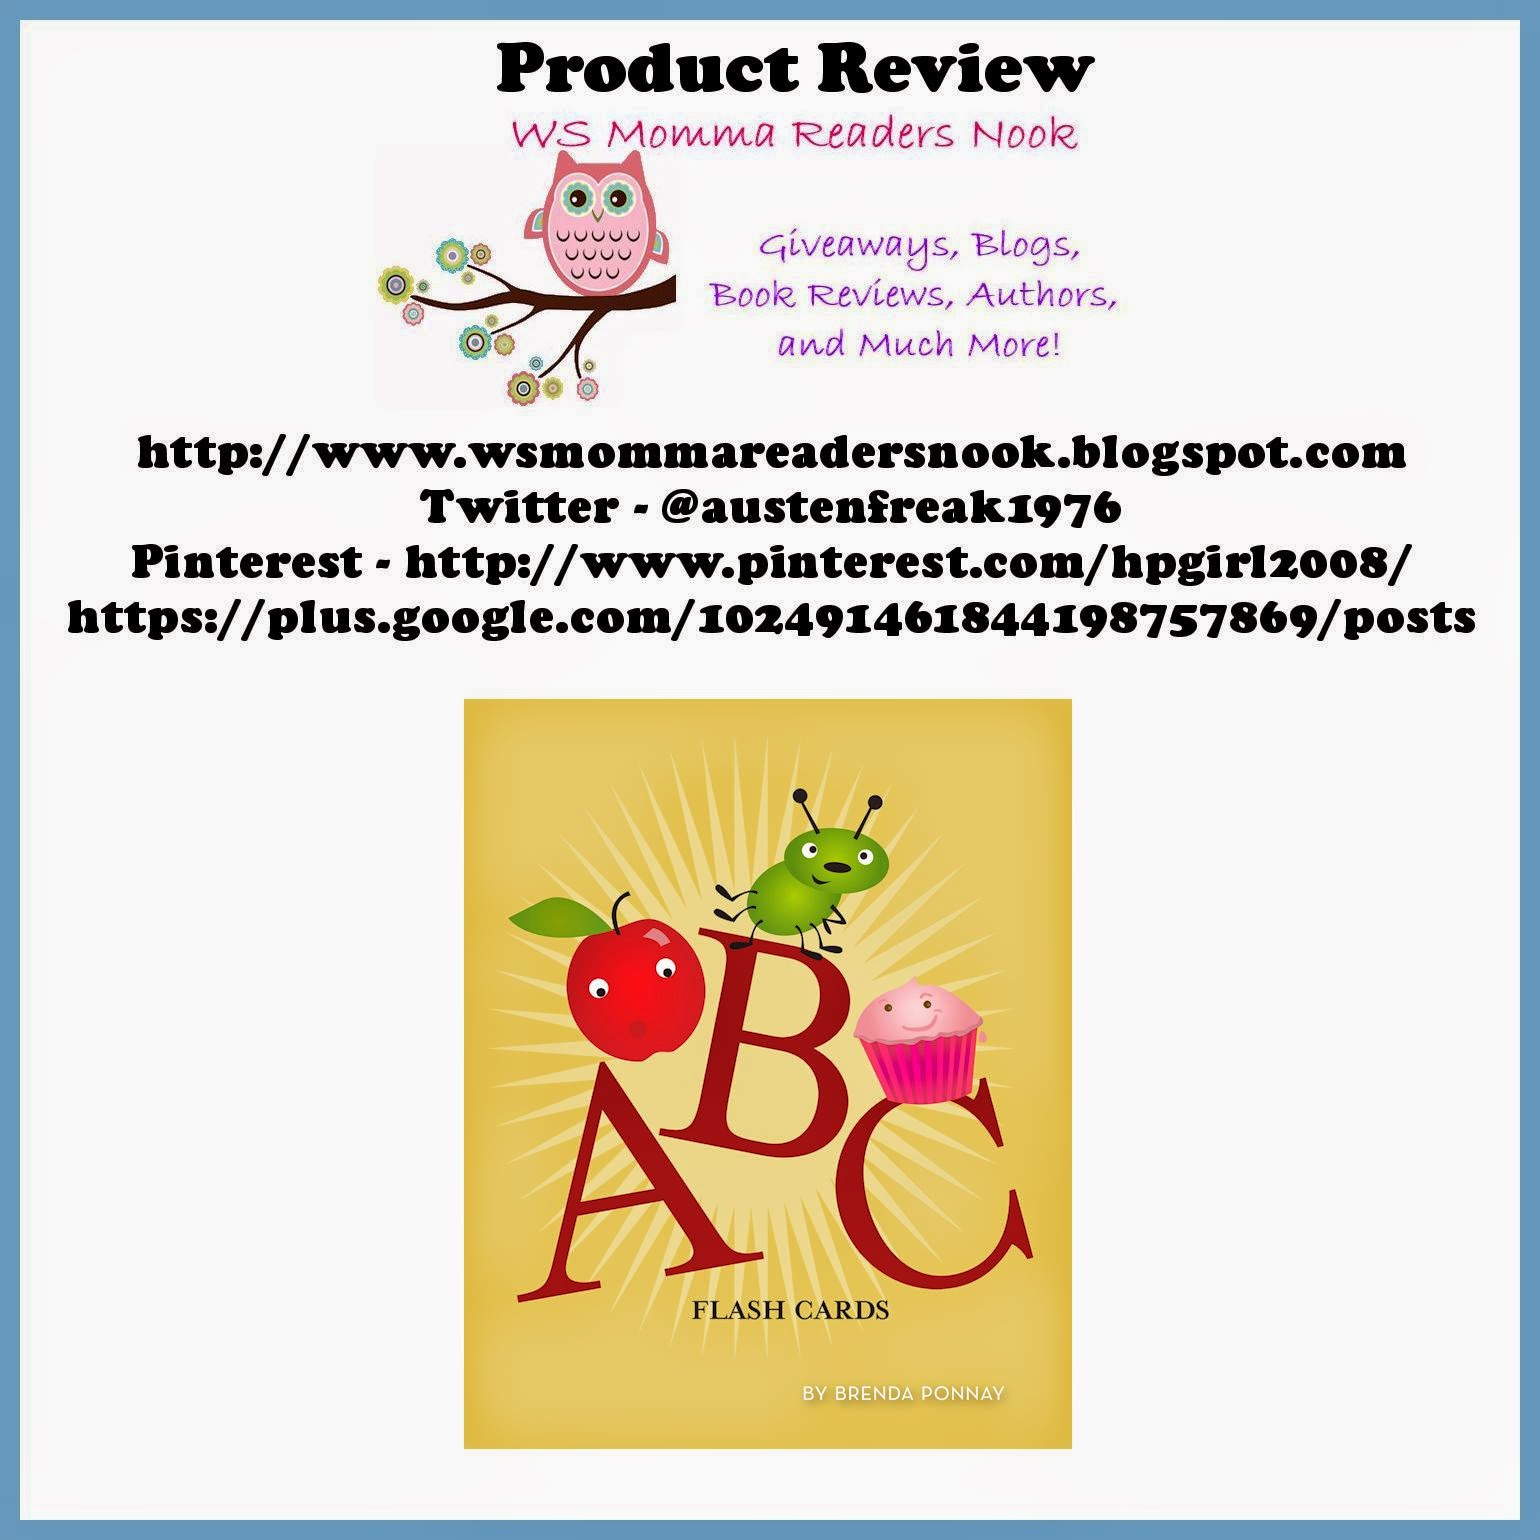 http://www.amazon.com/abc-flashcards-brenda-ponnay-ebook/dp/b00ftdk08a